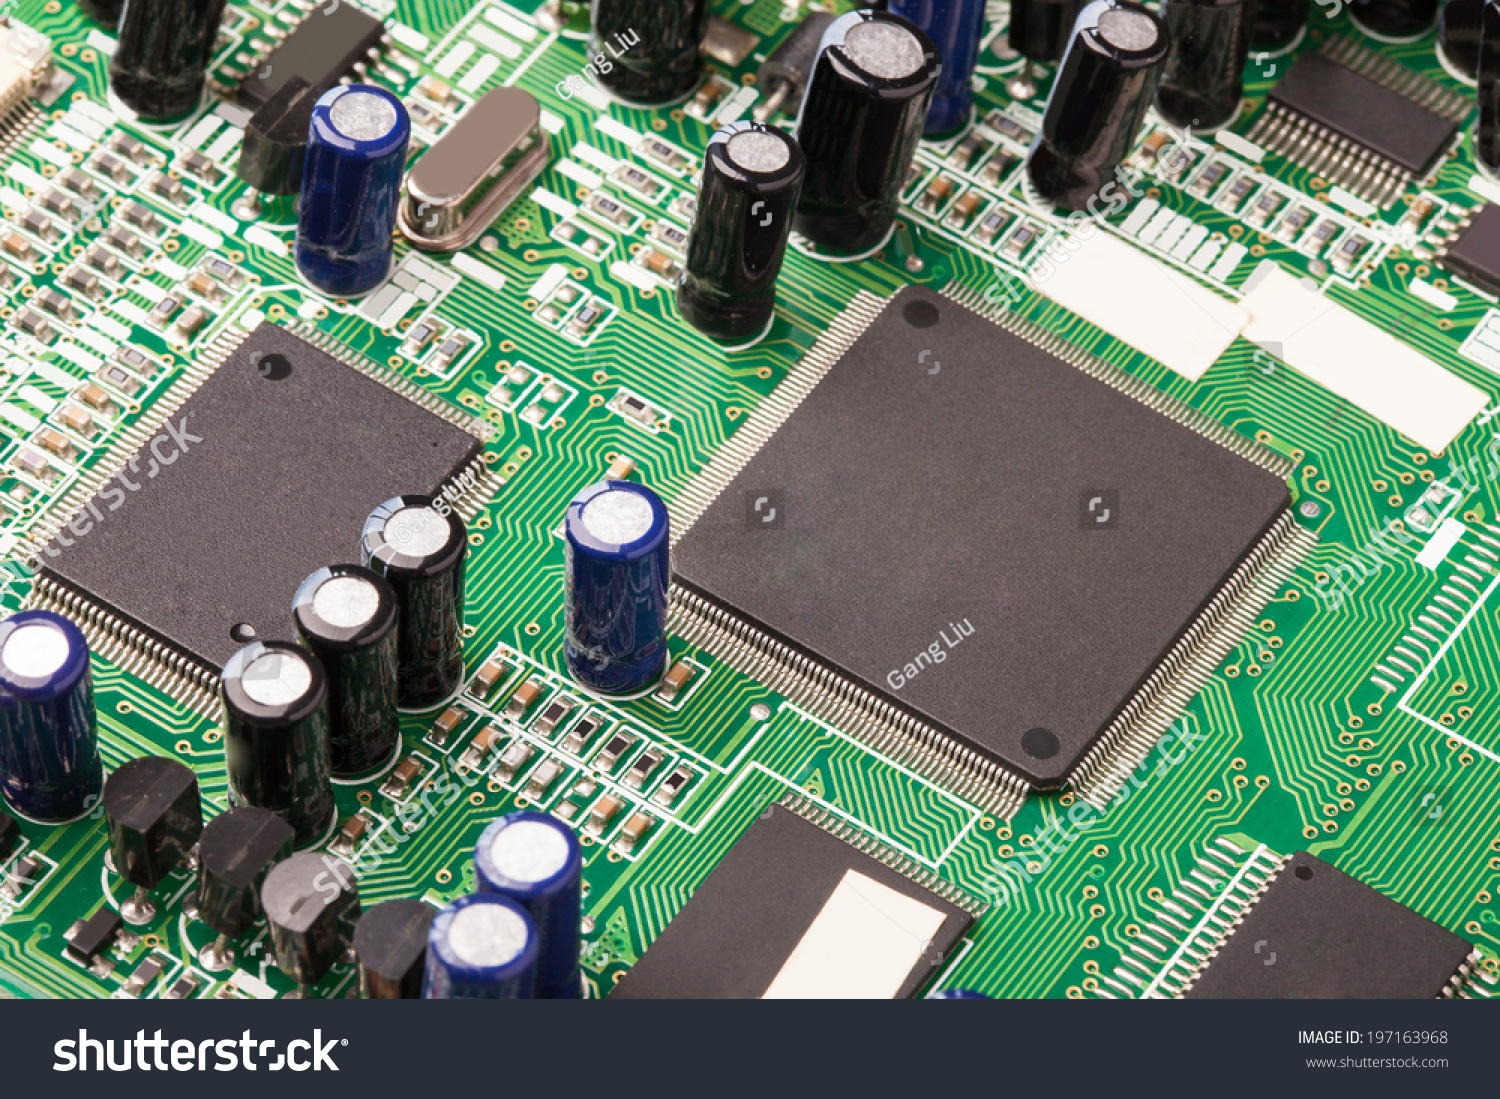 Closeup View Of Integrated Circuit Board With Components Ez Canvas Amplifier Images Id 197163968